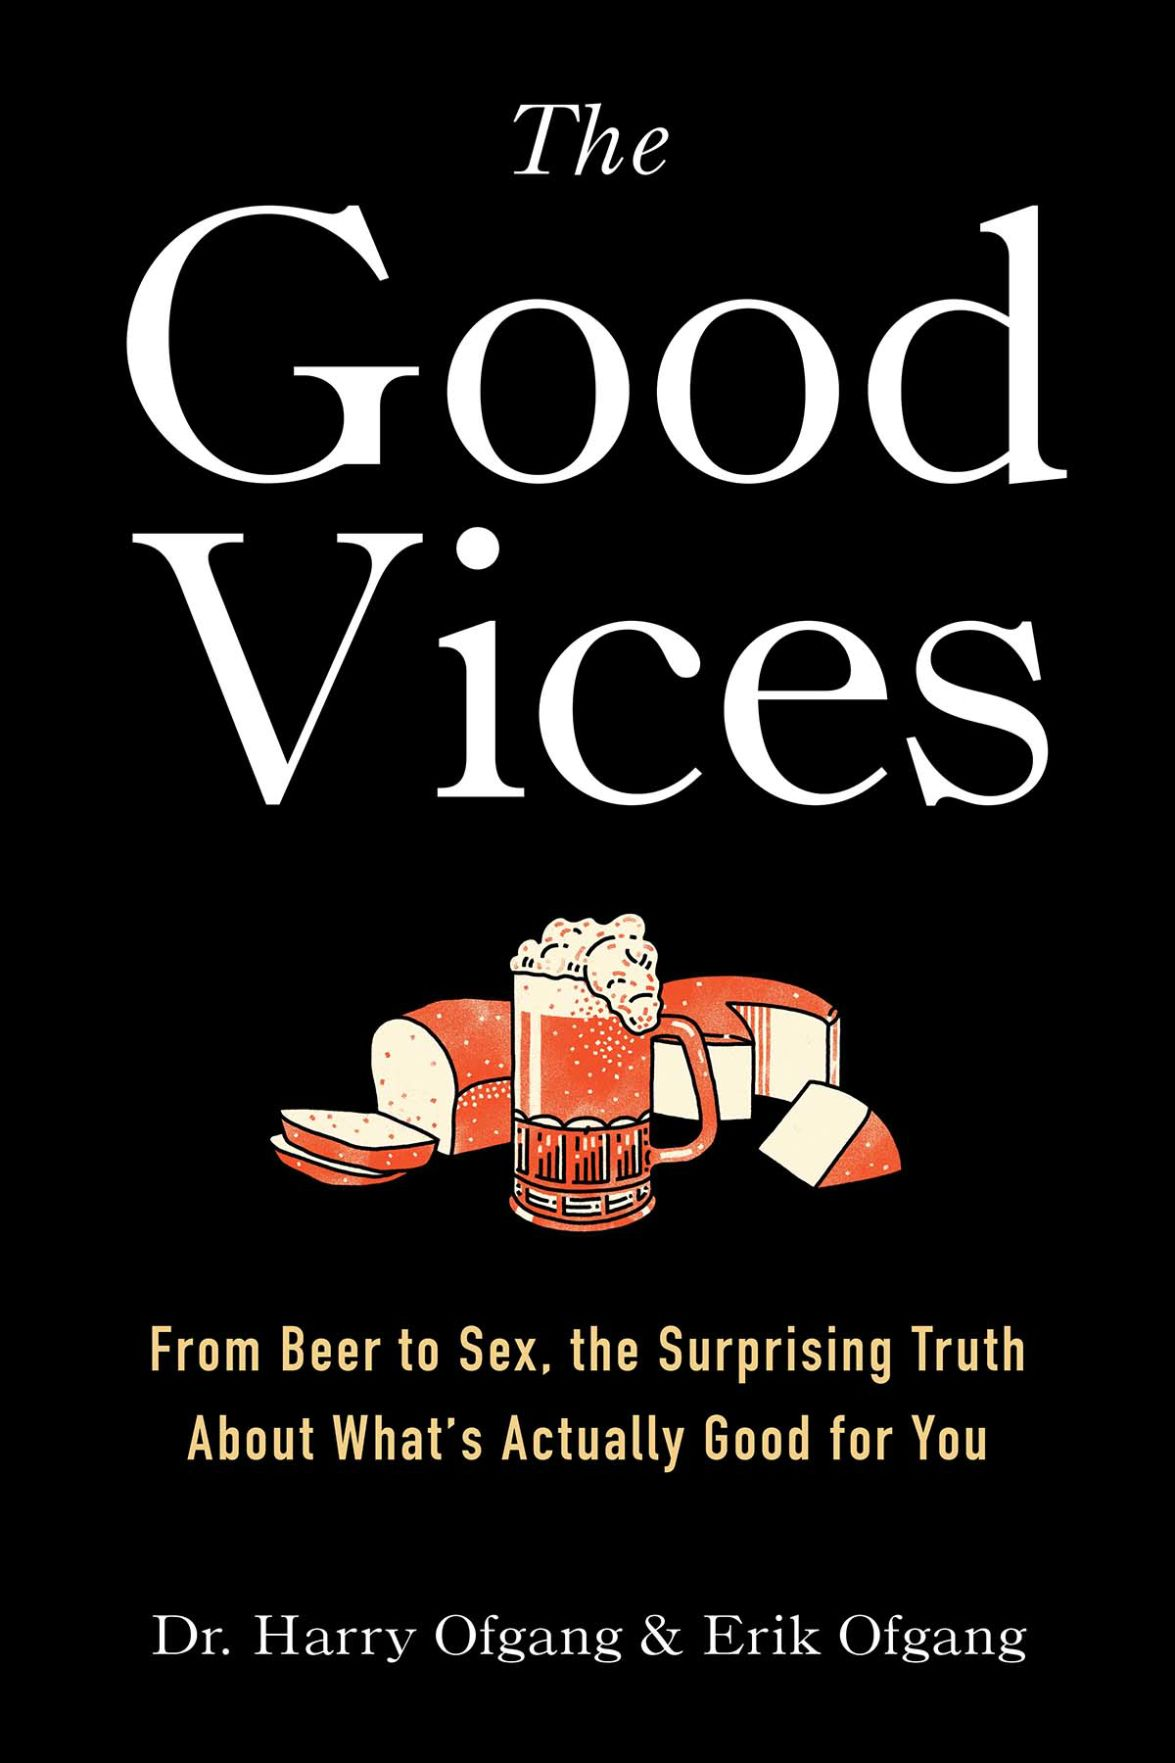 Cover_The Good Vices.jpg